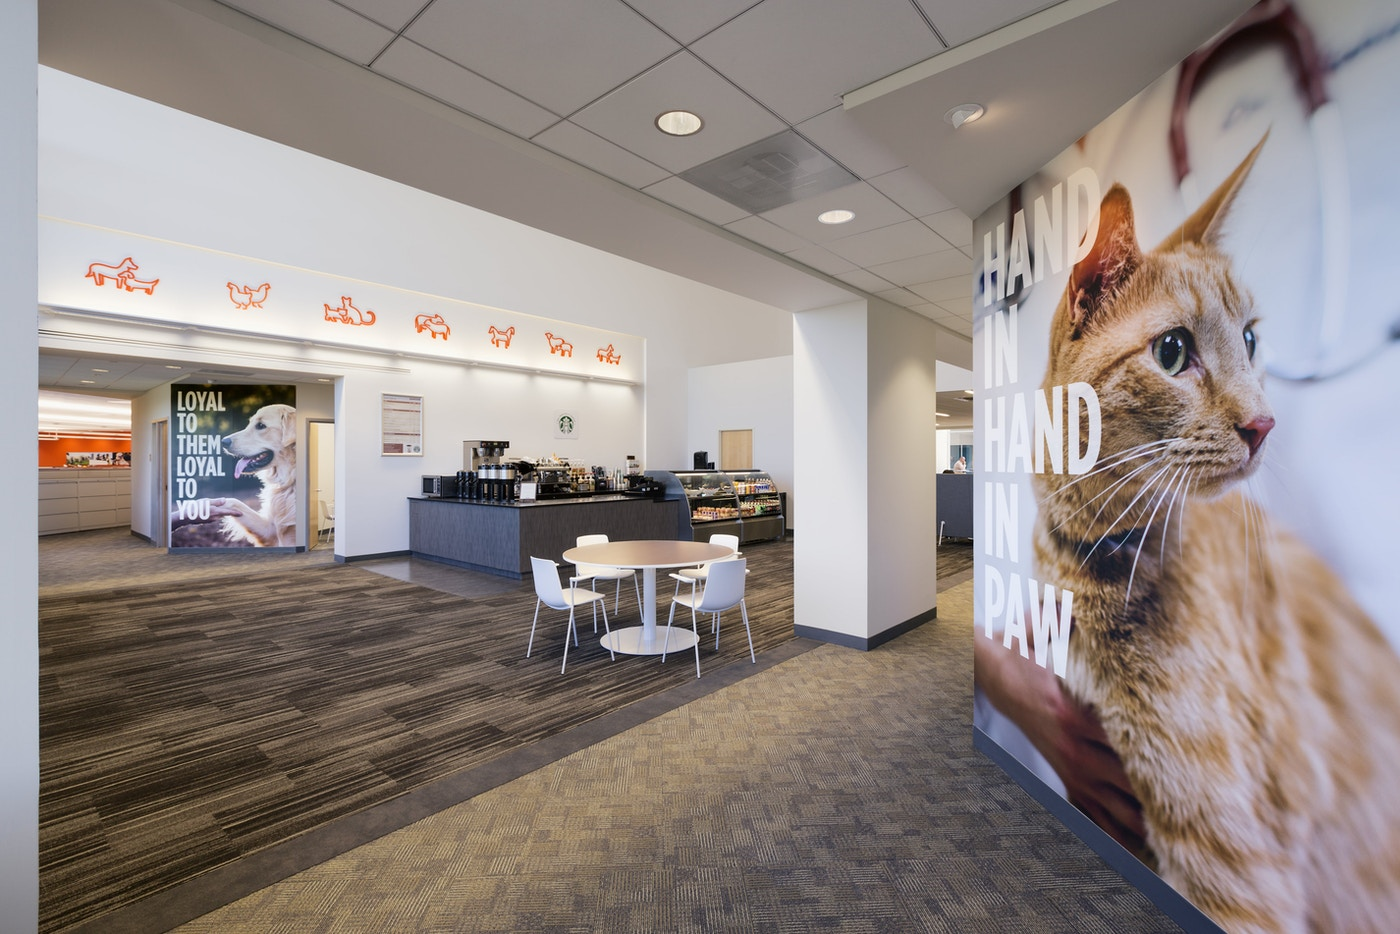 Zoetis branded environment, cat wallpaper